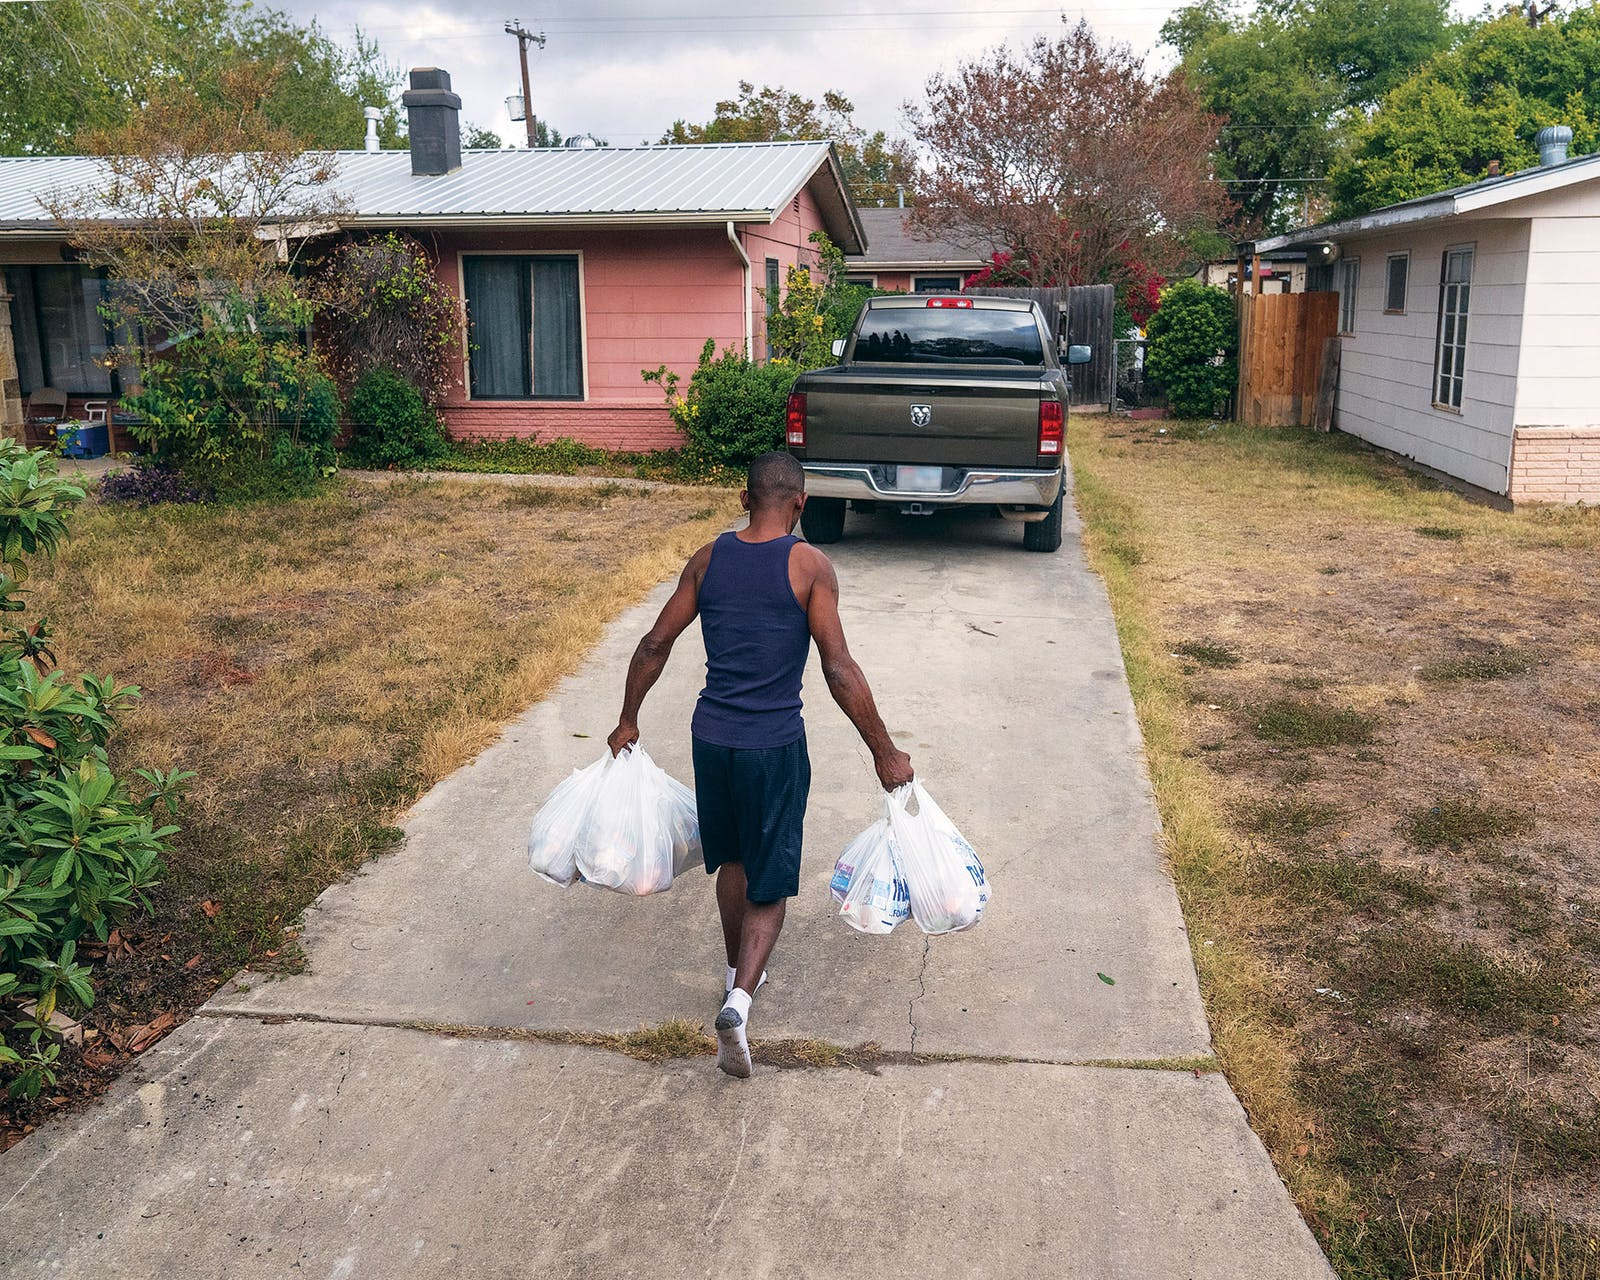 Lawrence Walker carries groceries back to his home after picking up food from the school bus.